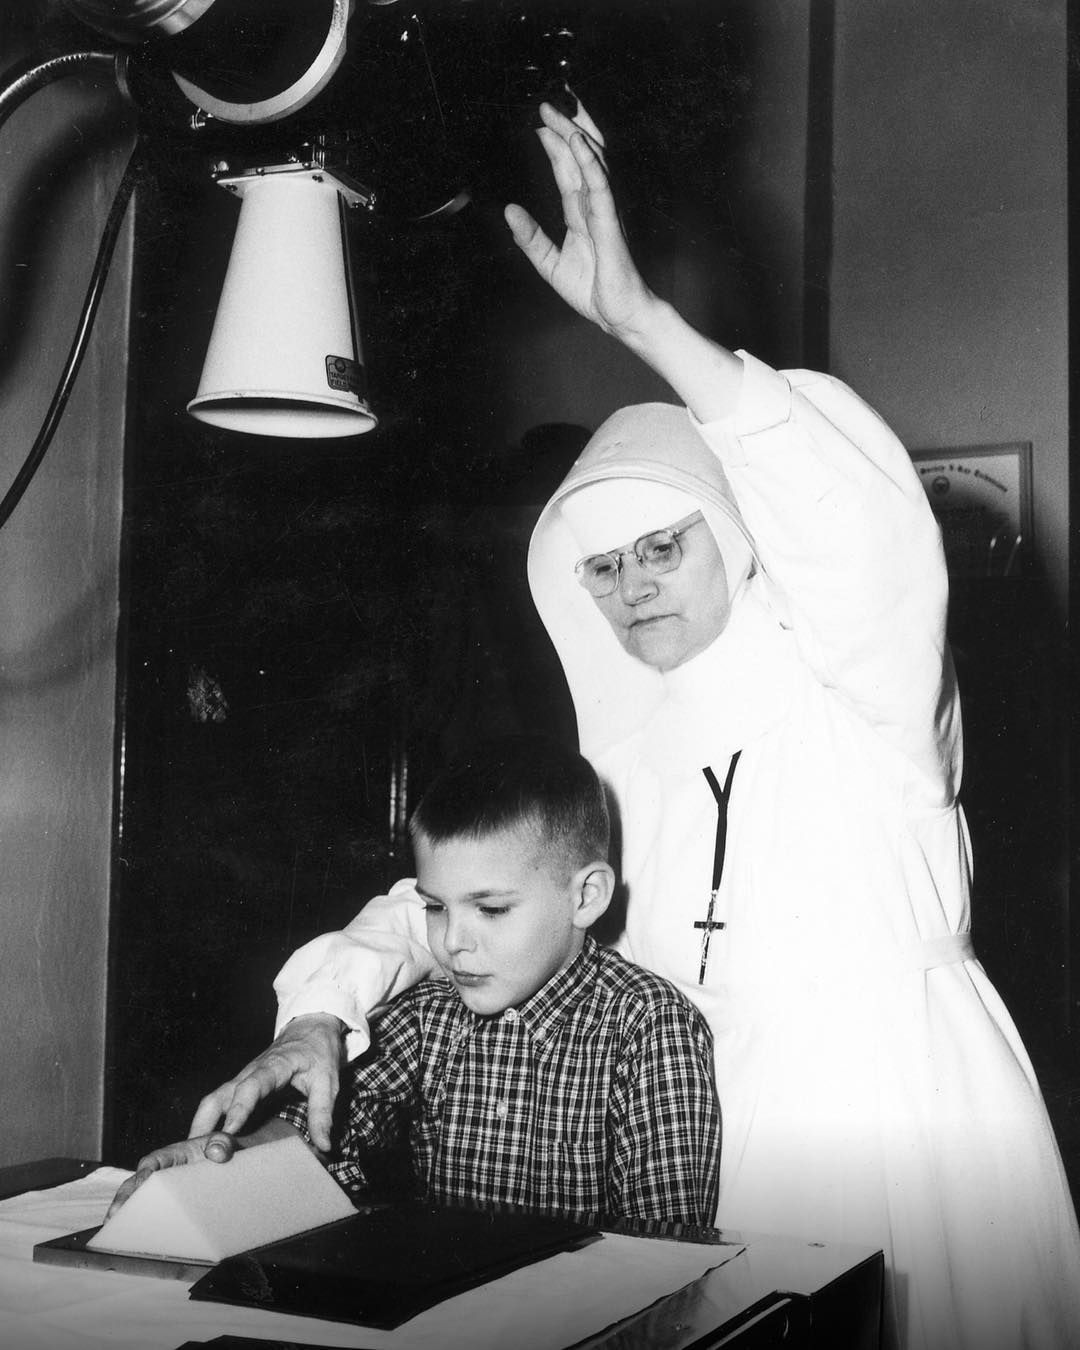 In 1957, Sister Margaret Mary Suppiger, R.T.(R), was the